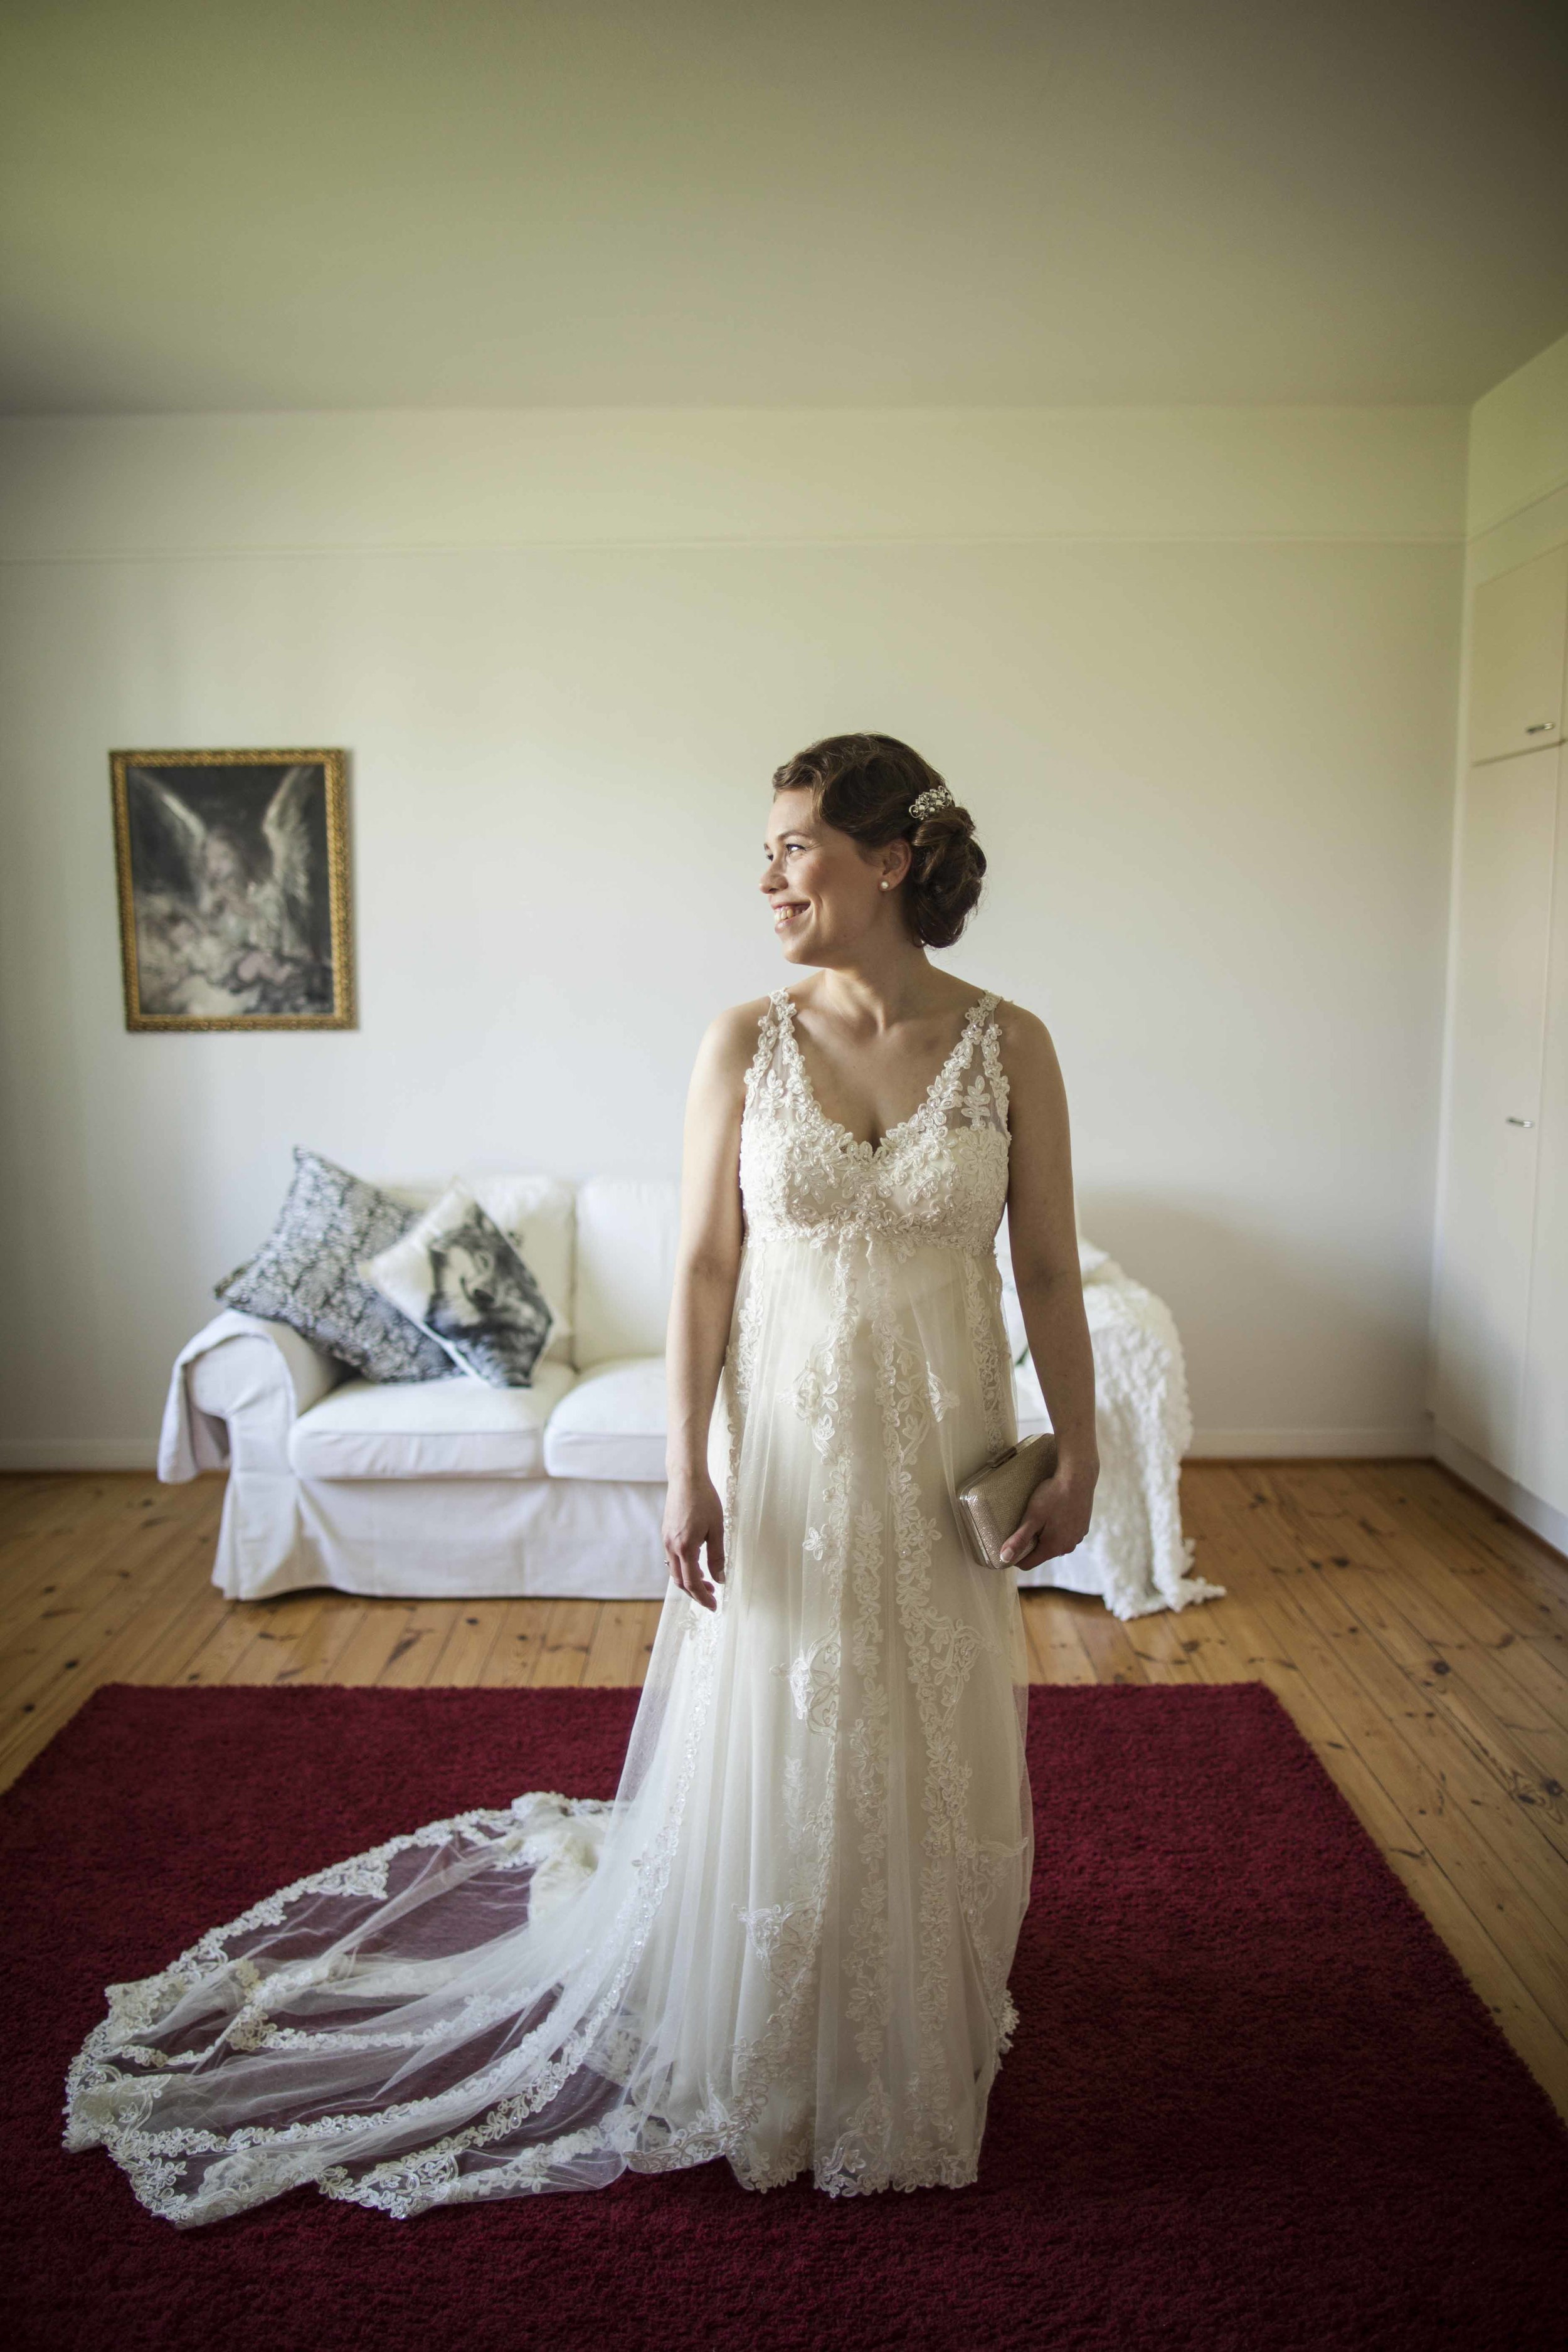 We documented Helena's wedding in Finland and had a portrait session with her in Hawaii. We love travelling internationally with our photography and making new friends along the way.